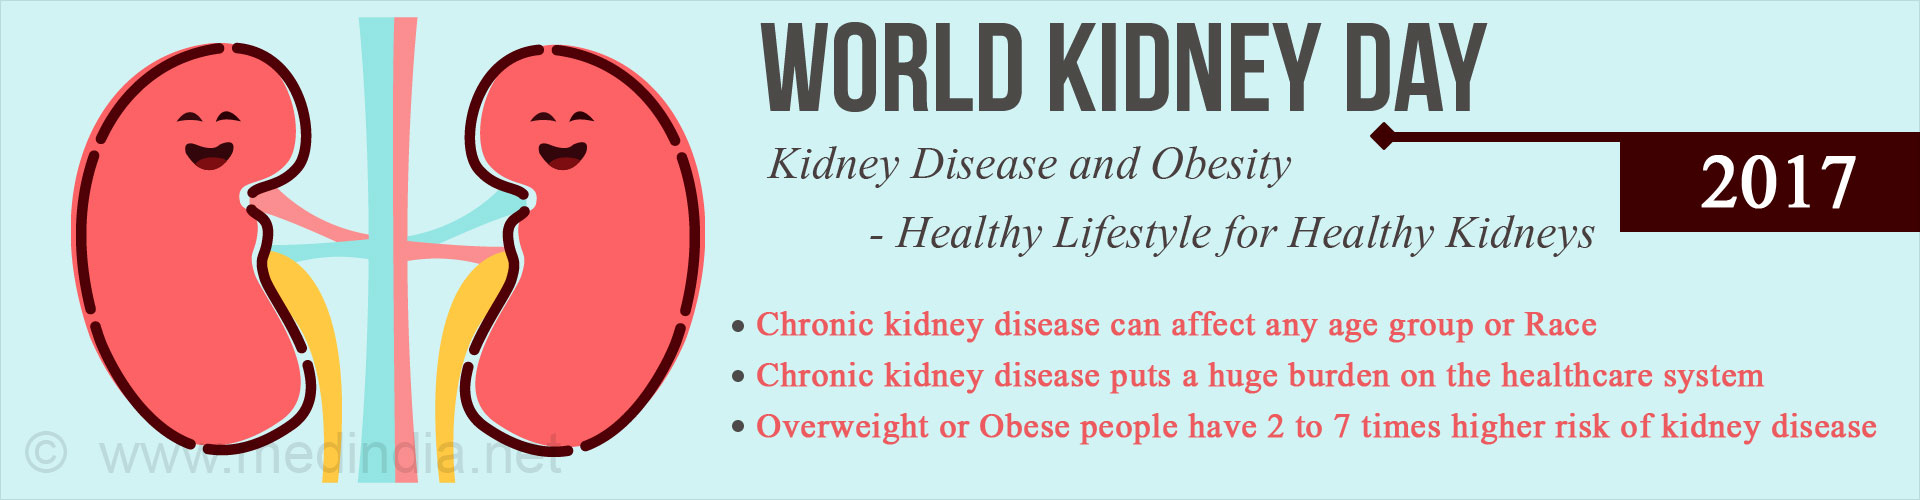 World Kidney Day 2017: Kidney Disease and Obesity - Healthy Lifestyle for Healthy Kidneys